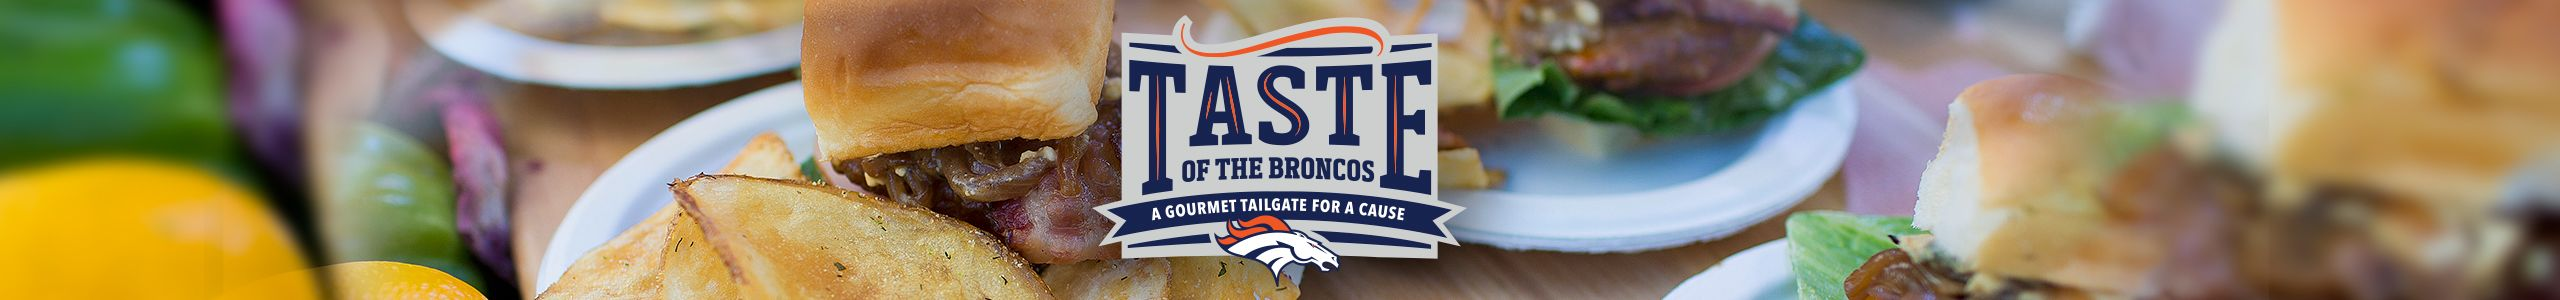 Taste of the Broncos